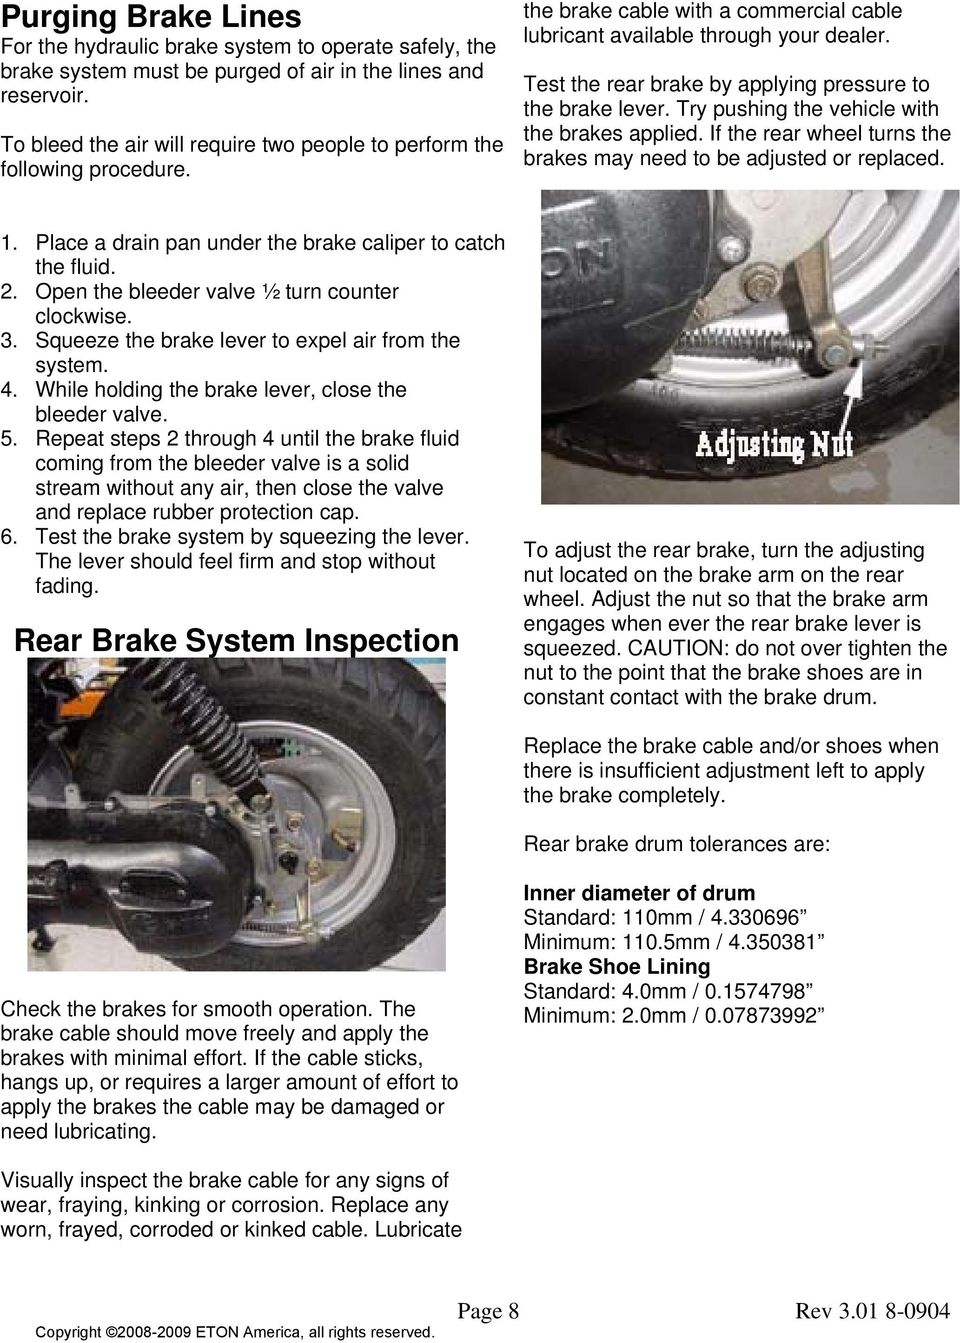 Test the rear brake by applying pressure to the brake lever. Try pushing  the vehicle